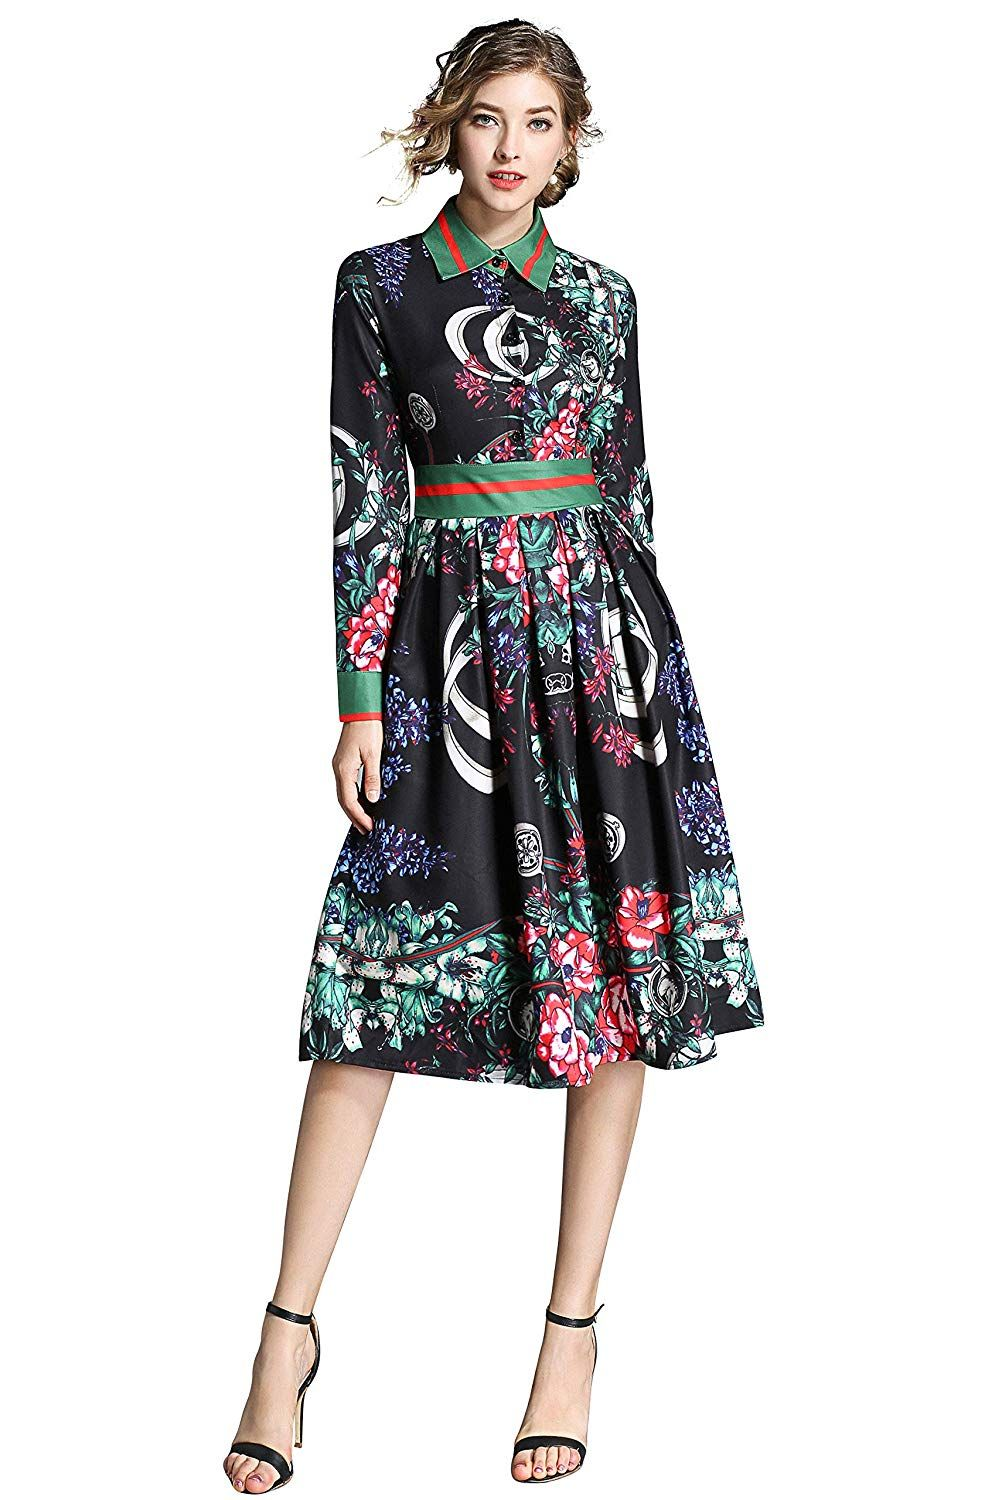 Lai Meng Five Cats Women S 3 4 Sleeve Floral Print Button Up Casual A Line Party Swing Midi Dress Midi Swing Dress Casual Dresses For Women Womens Dresses [ 1500 x 985 Pixel ]